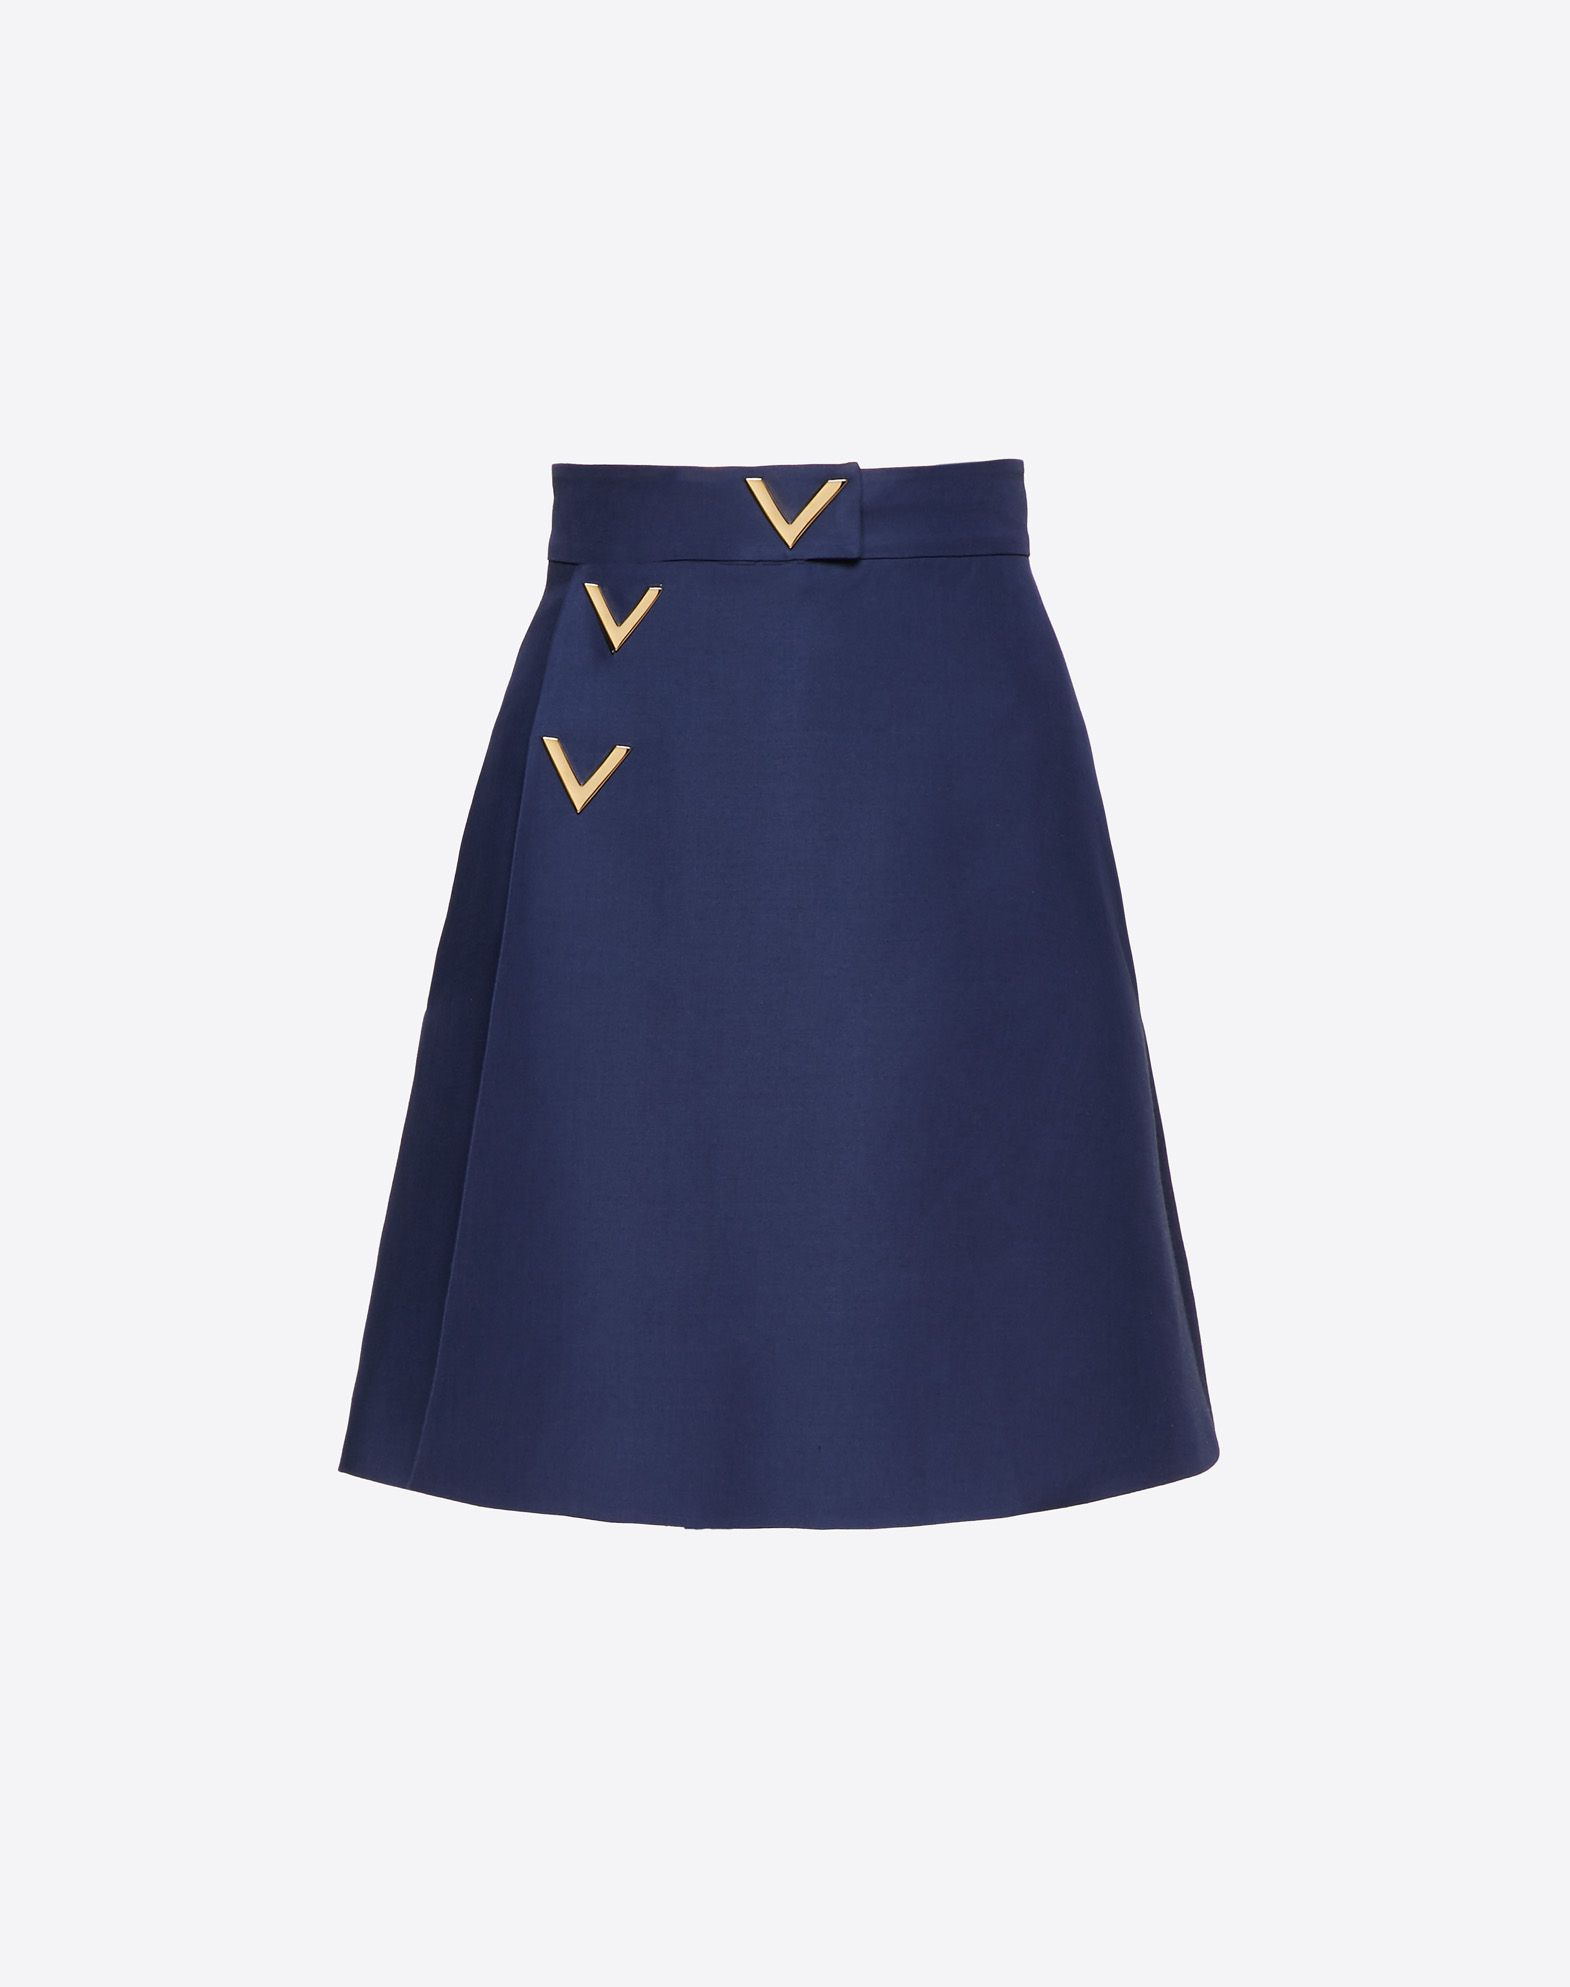 Silk Wool Cady Skirt with Gold V Details